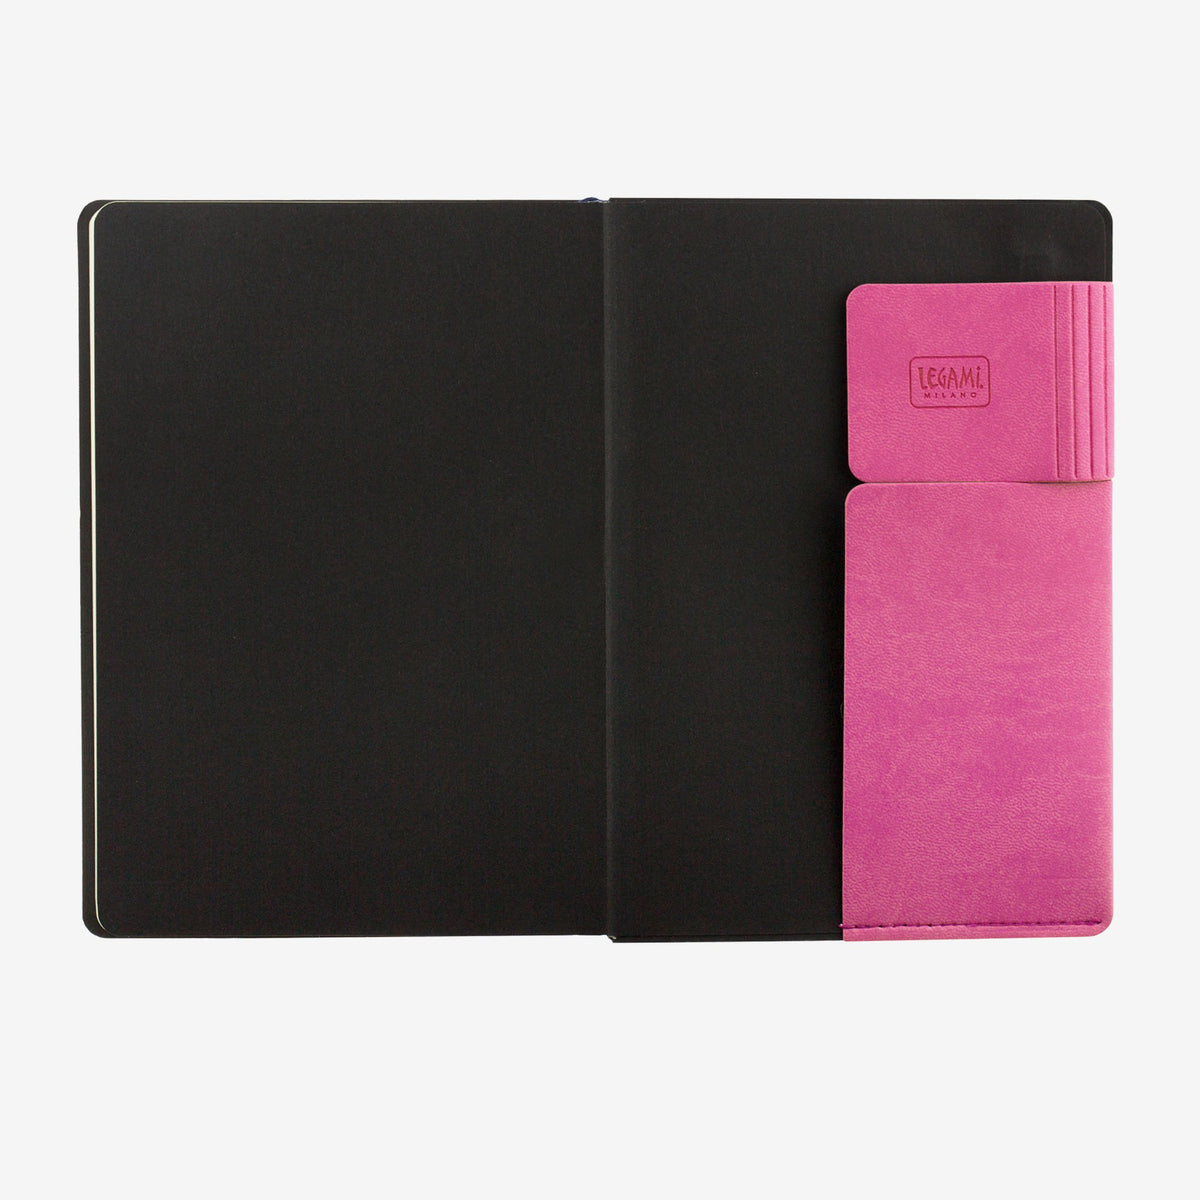 My notebook magenta last page legami gifts gift ideas gifting made simple